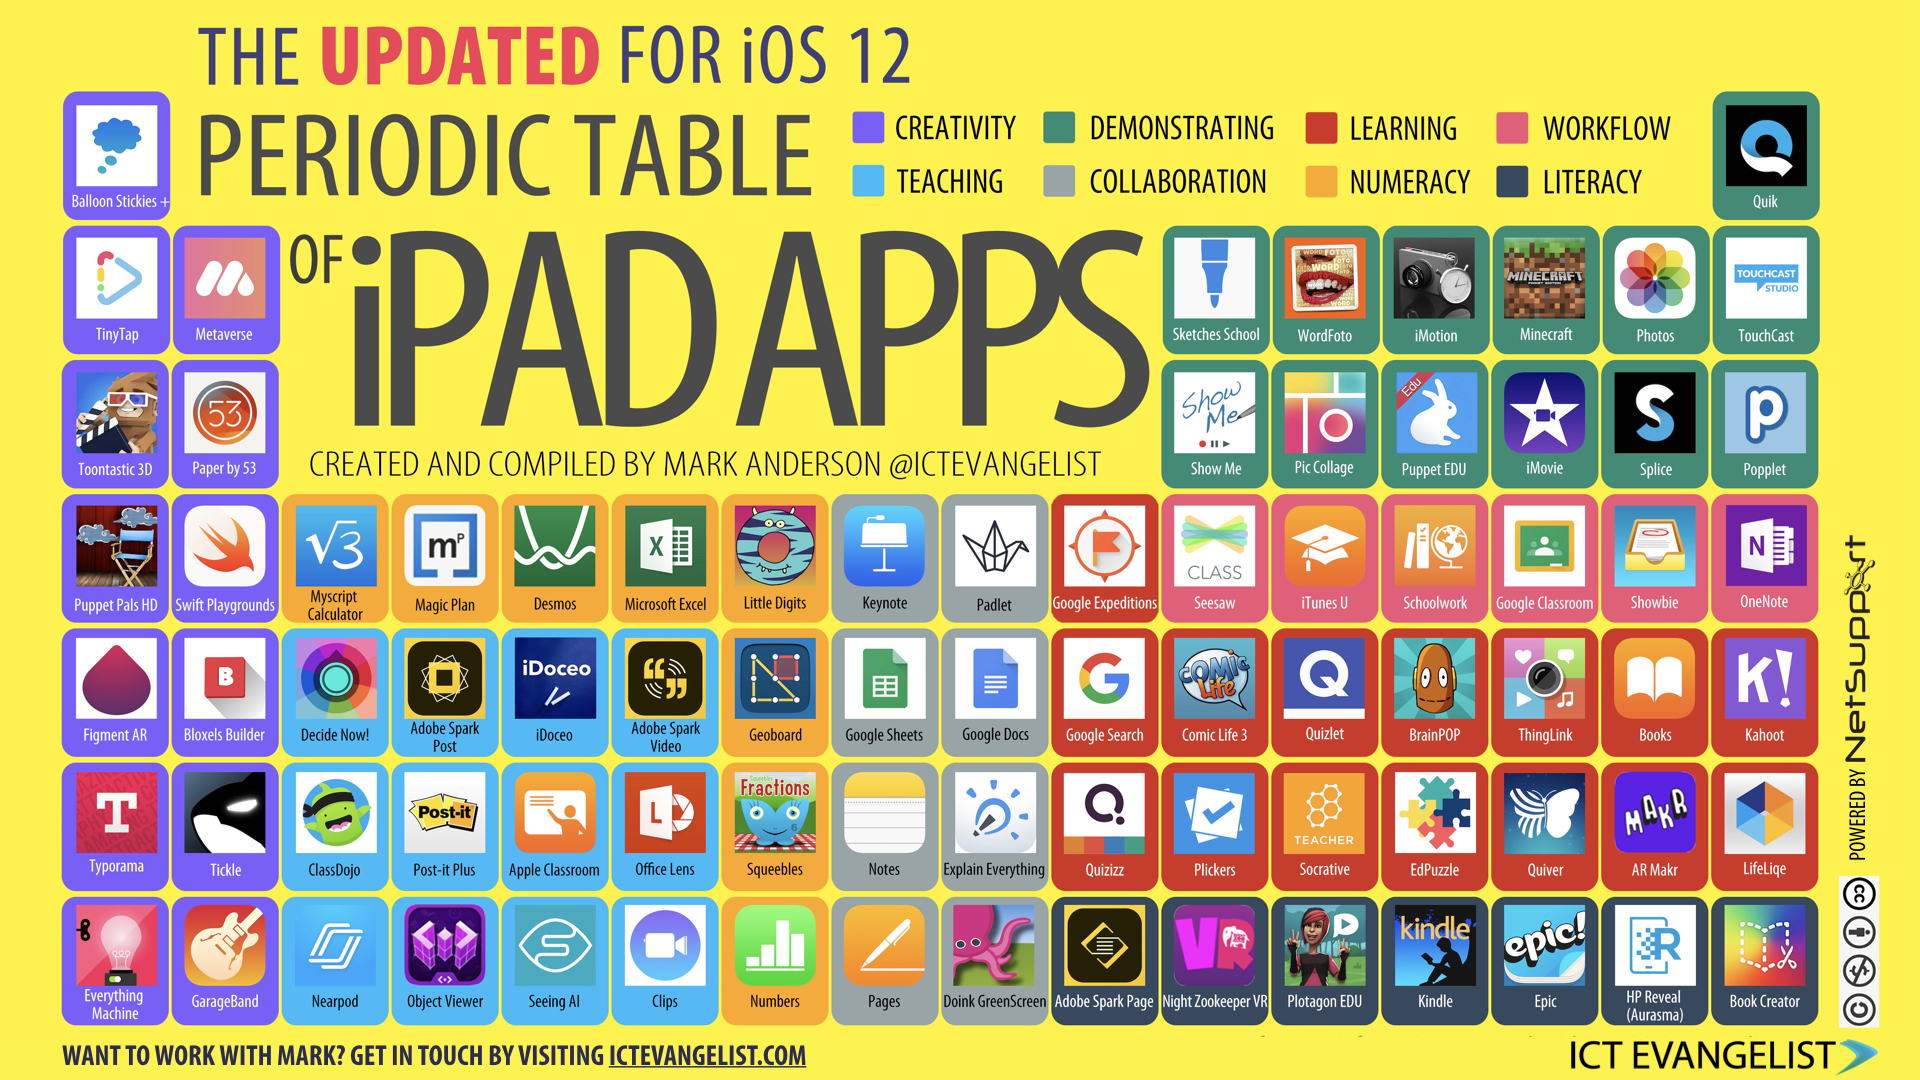 That Said I Hope You Find Table A Useful Guide To Some Of The Amazing S For Learning There Are Available On These Merely Handful